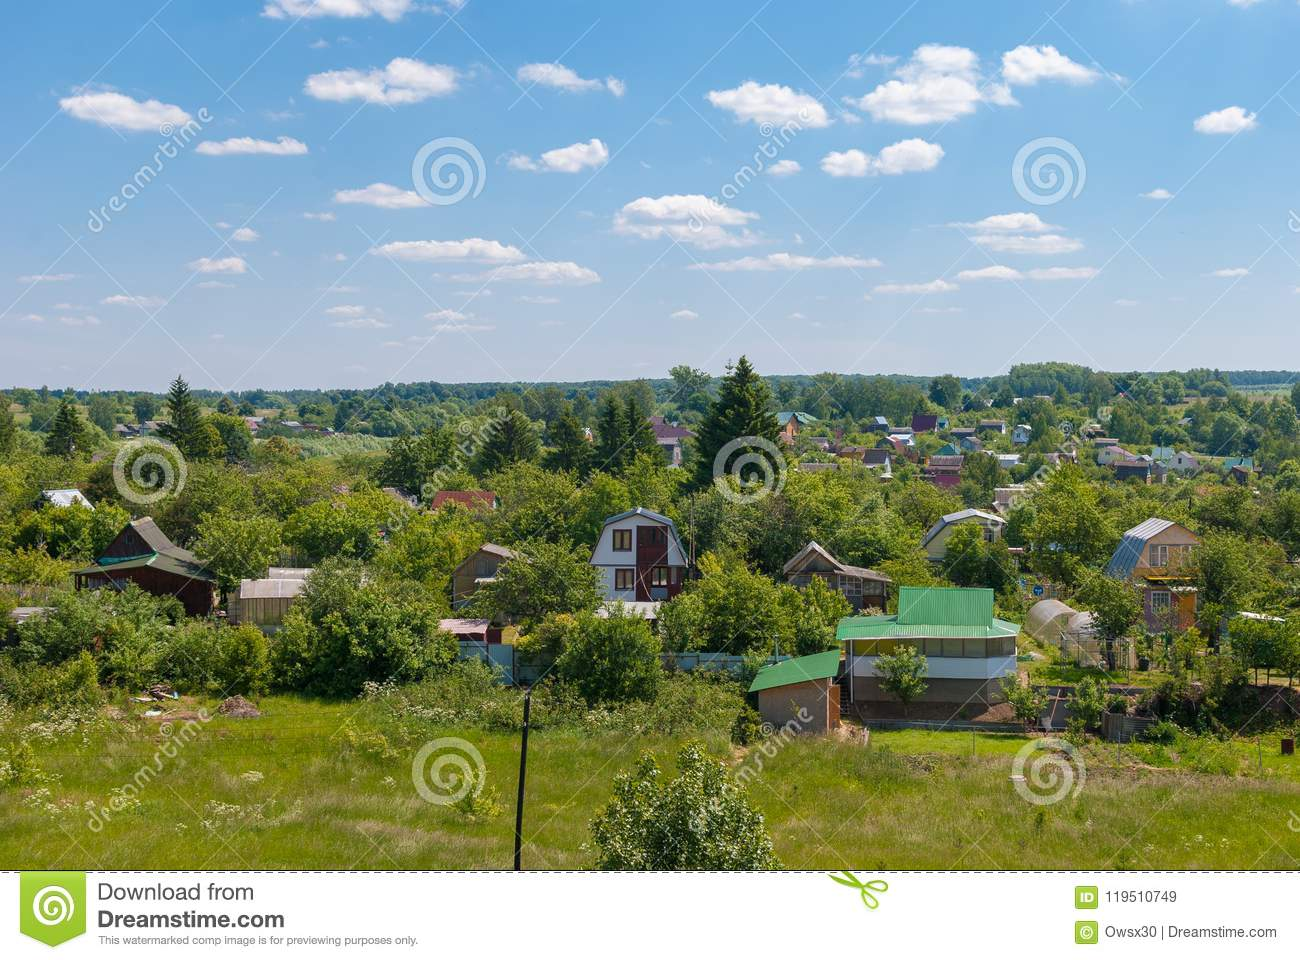 Sights of Tula region with a description 78